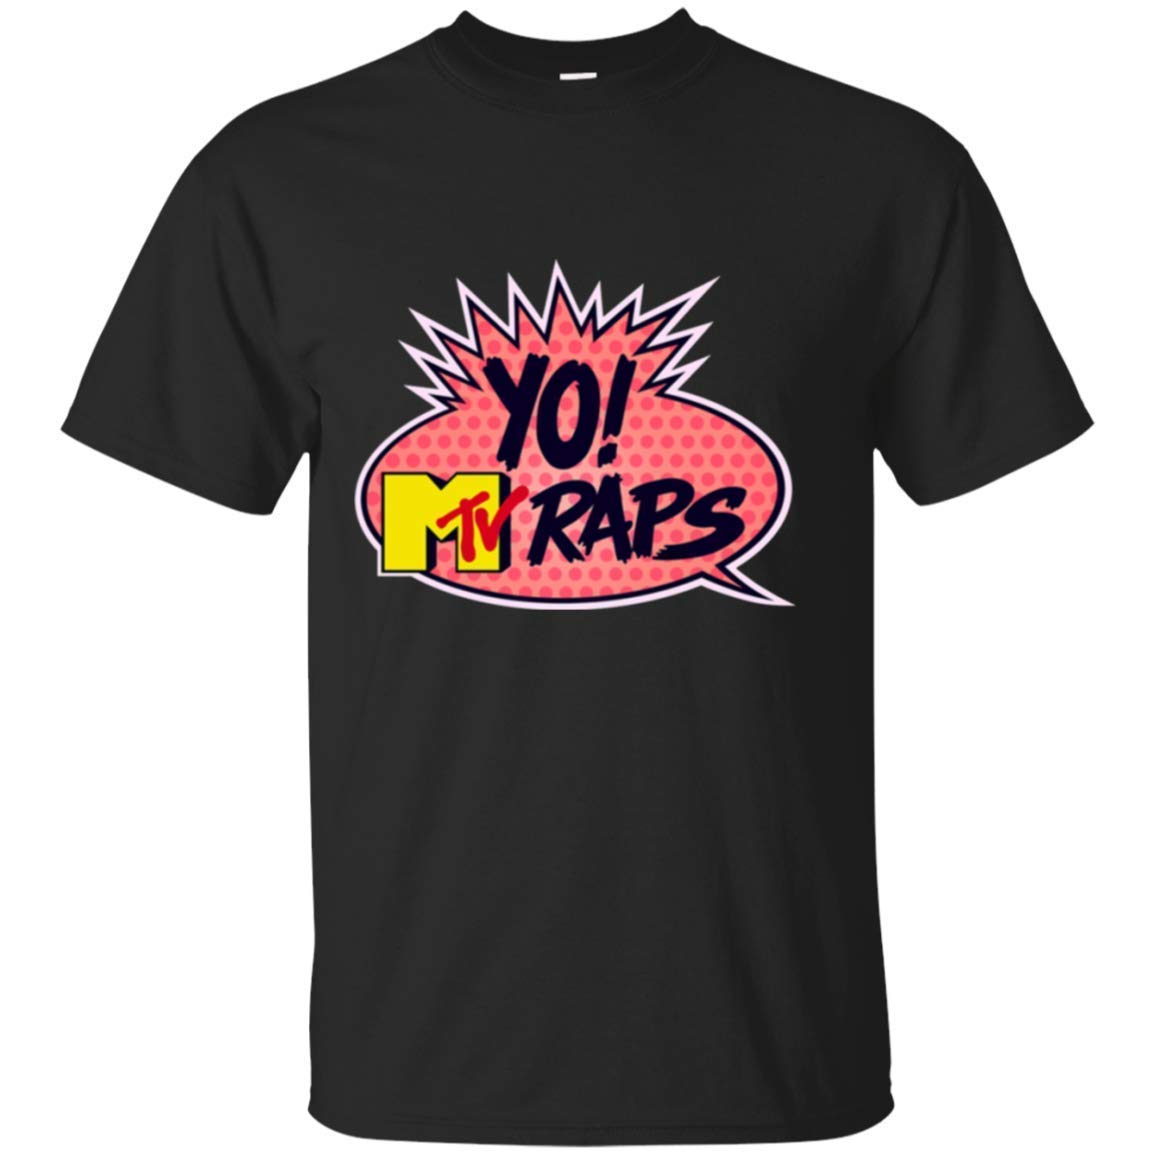 mfsore WENSONw Yo Shirt for Men MTV Raps T